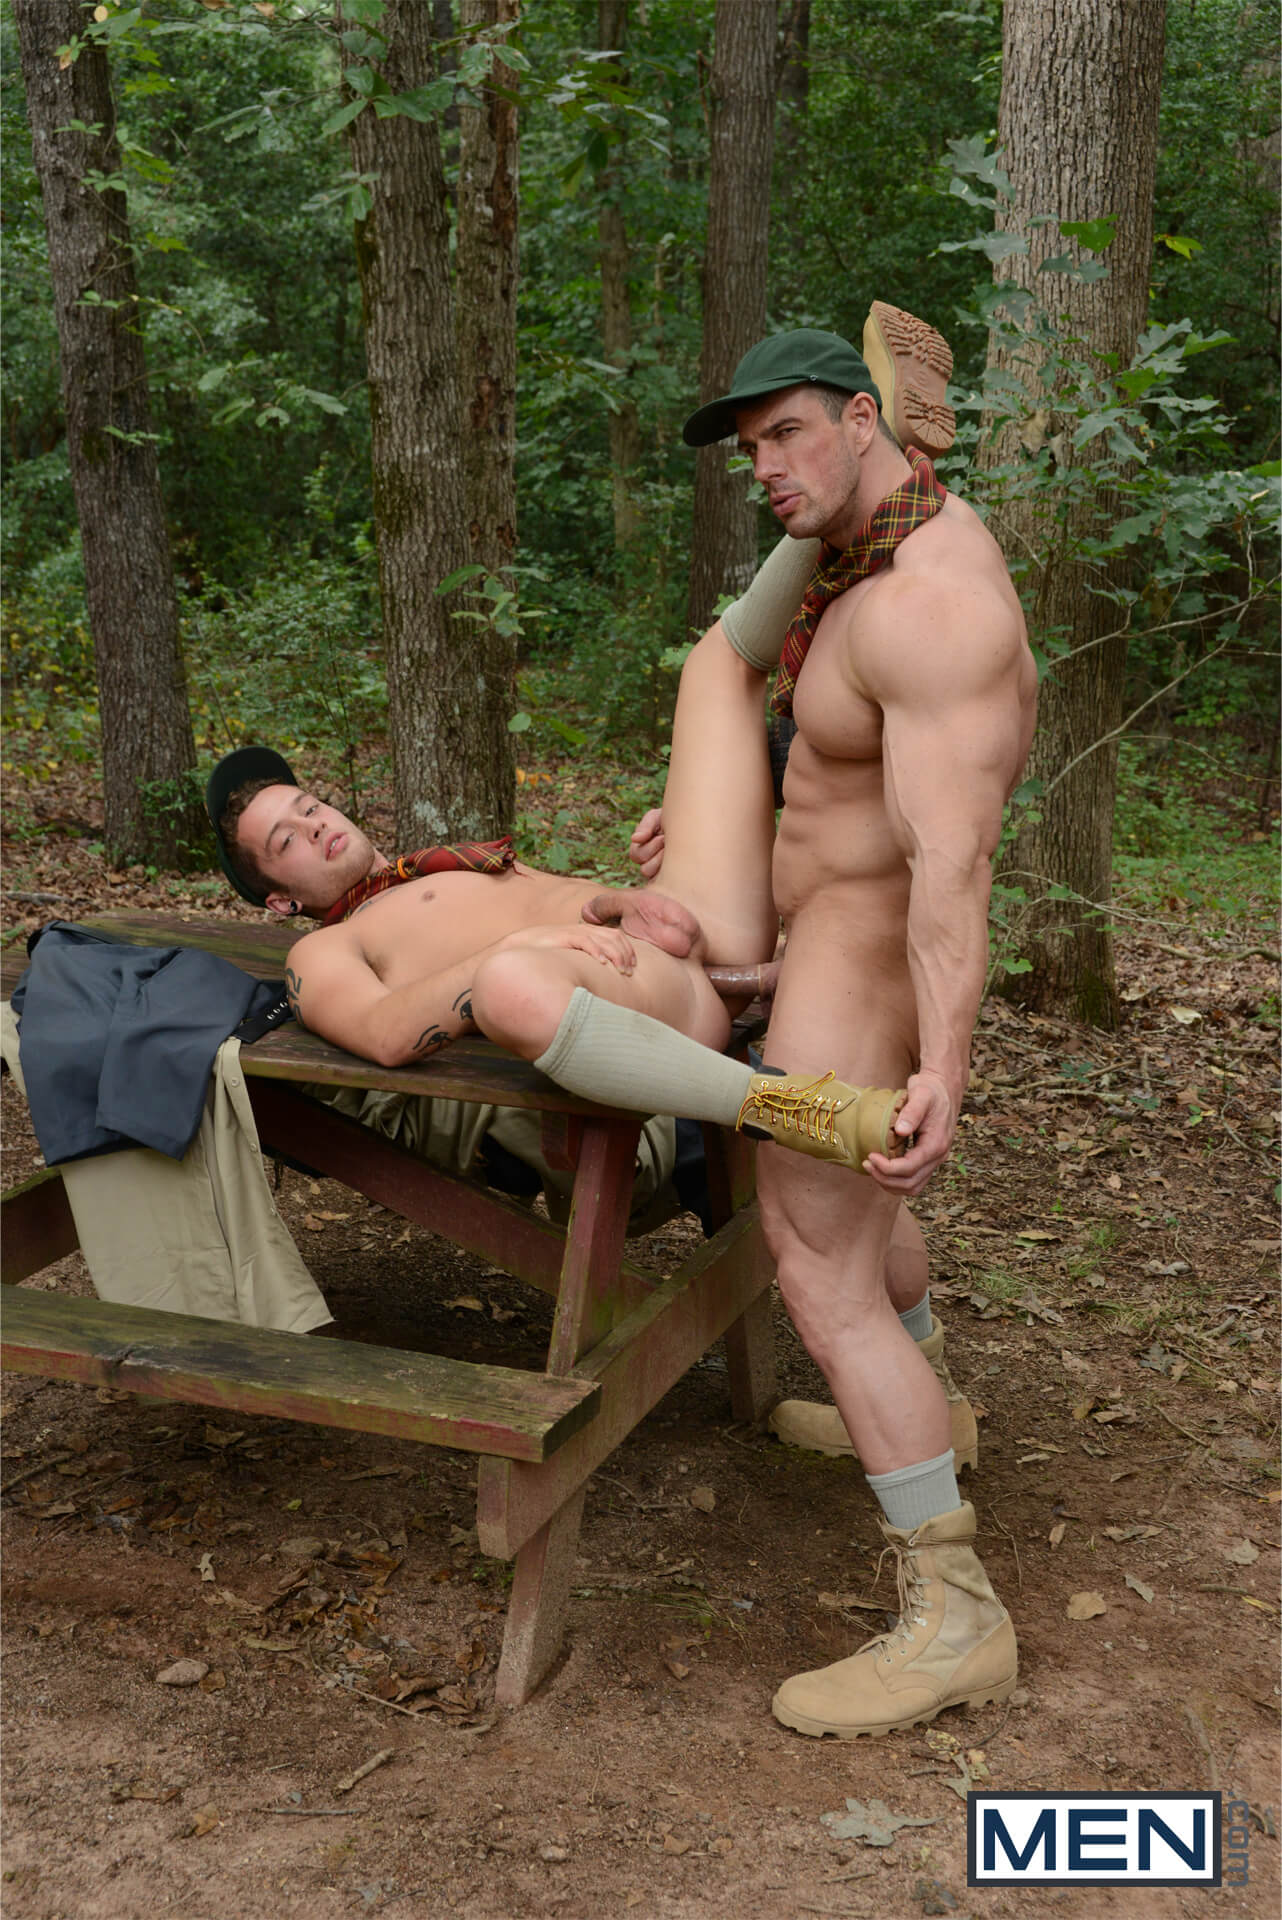 men jizz orgy scouts part 4 ck steel jack radley johnny rapid zac stevens zeb atlas gay porn blog image 13